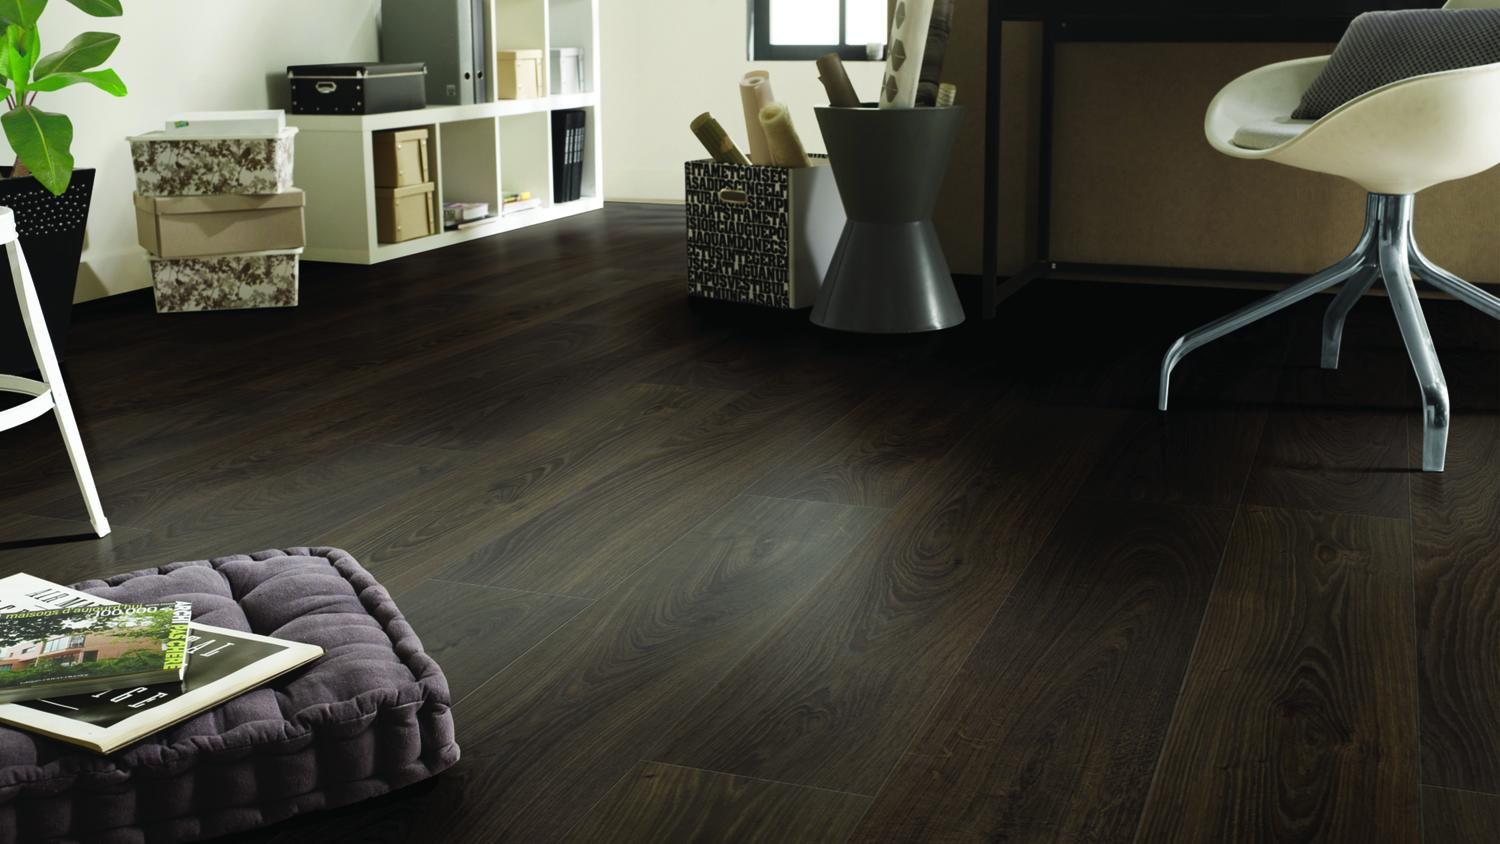 oak save lay tarkett floor inspiration flooring sawn click loose enlarge grey id vinyl to